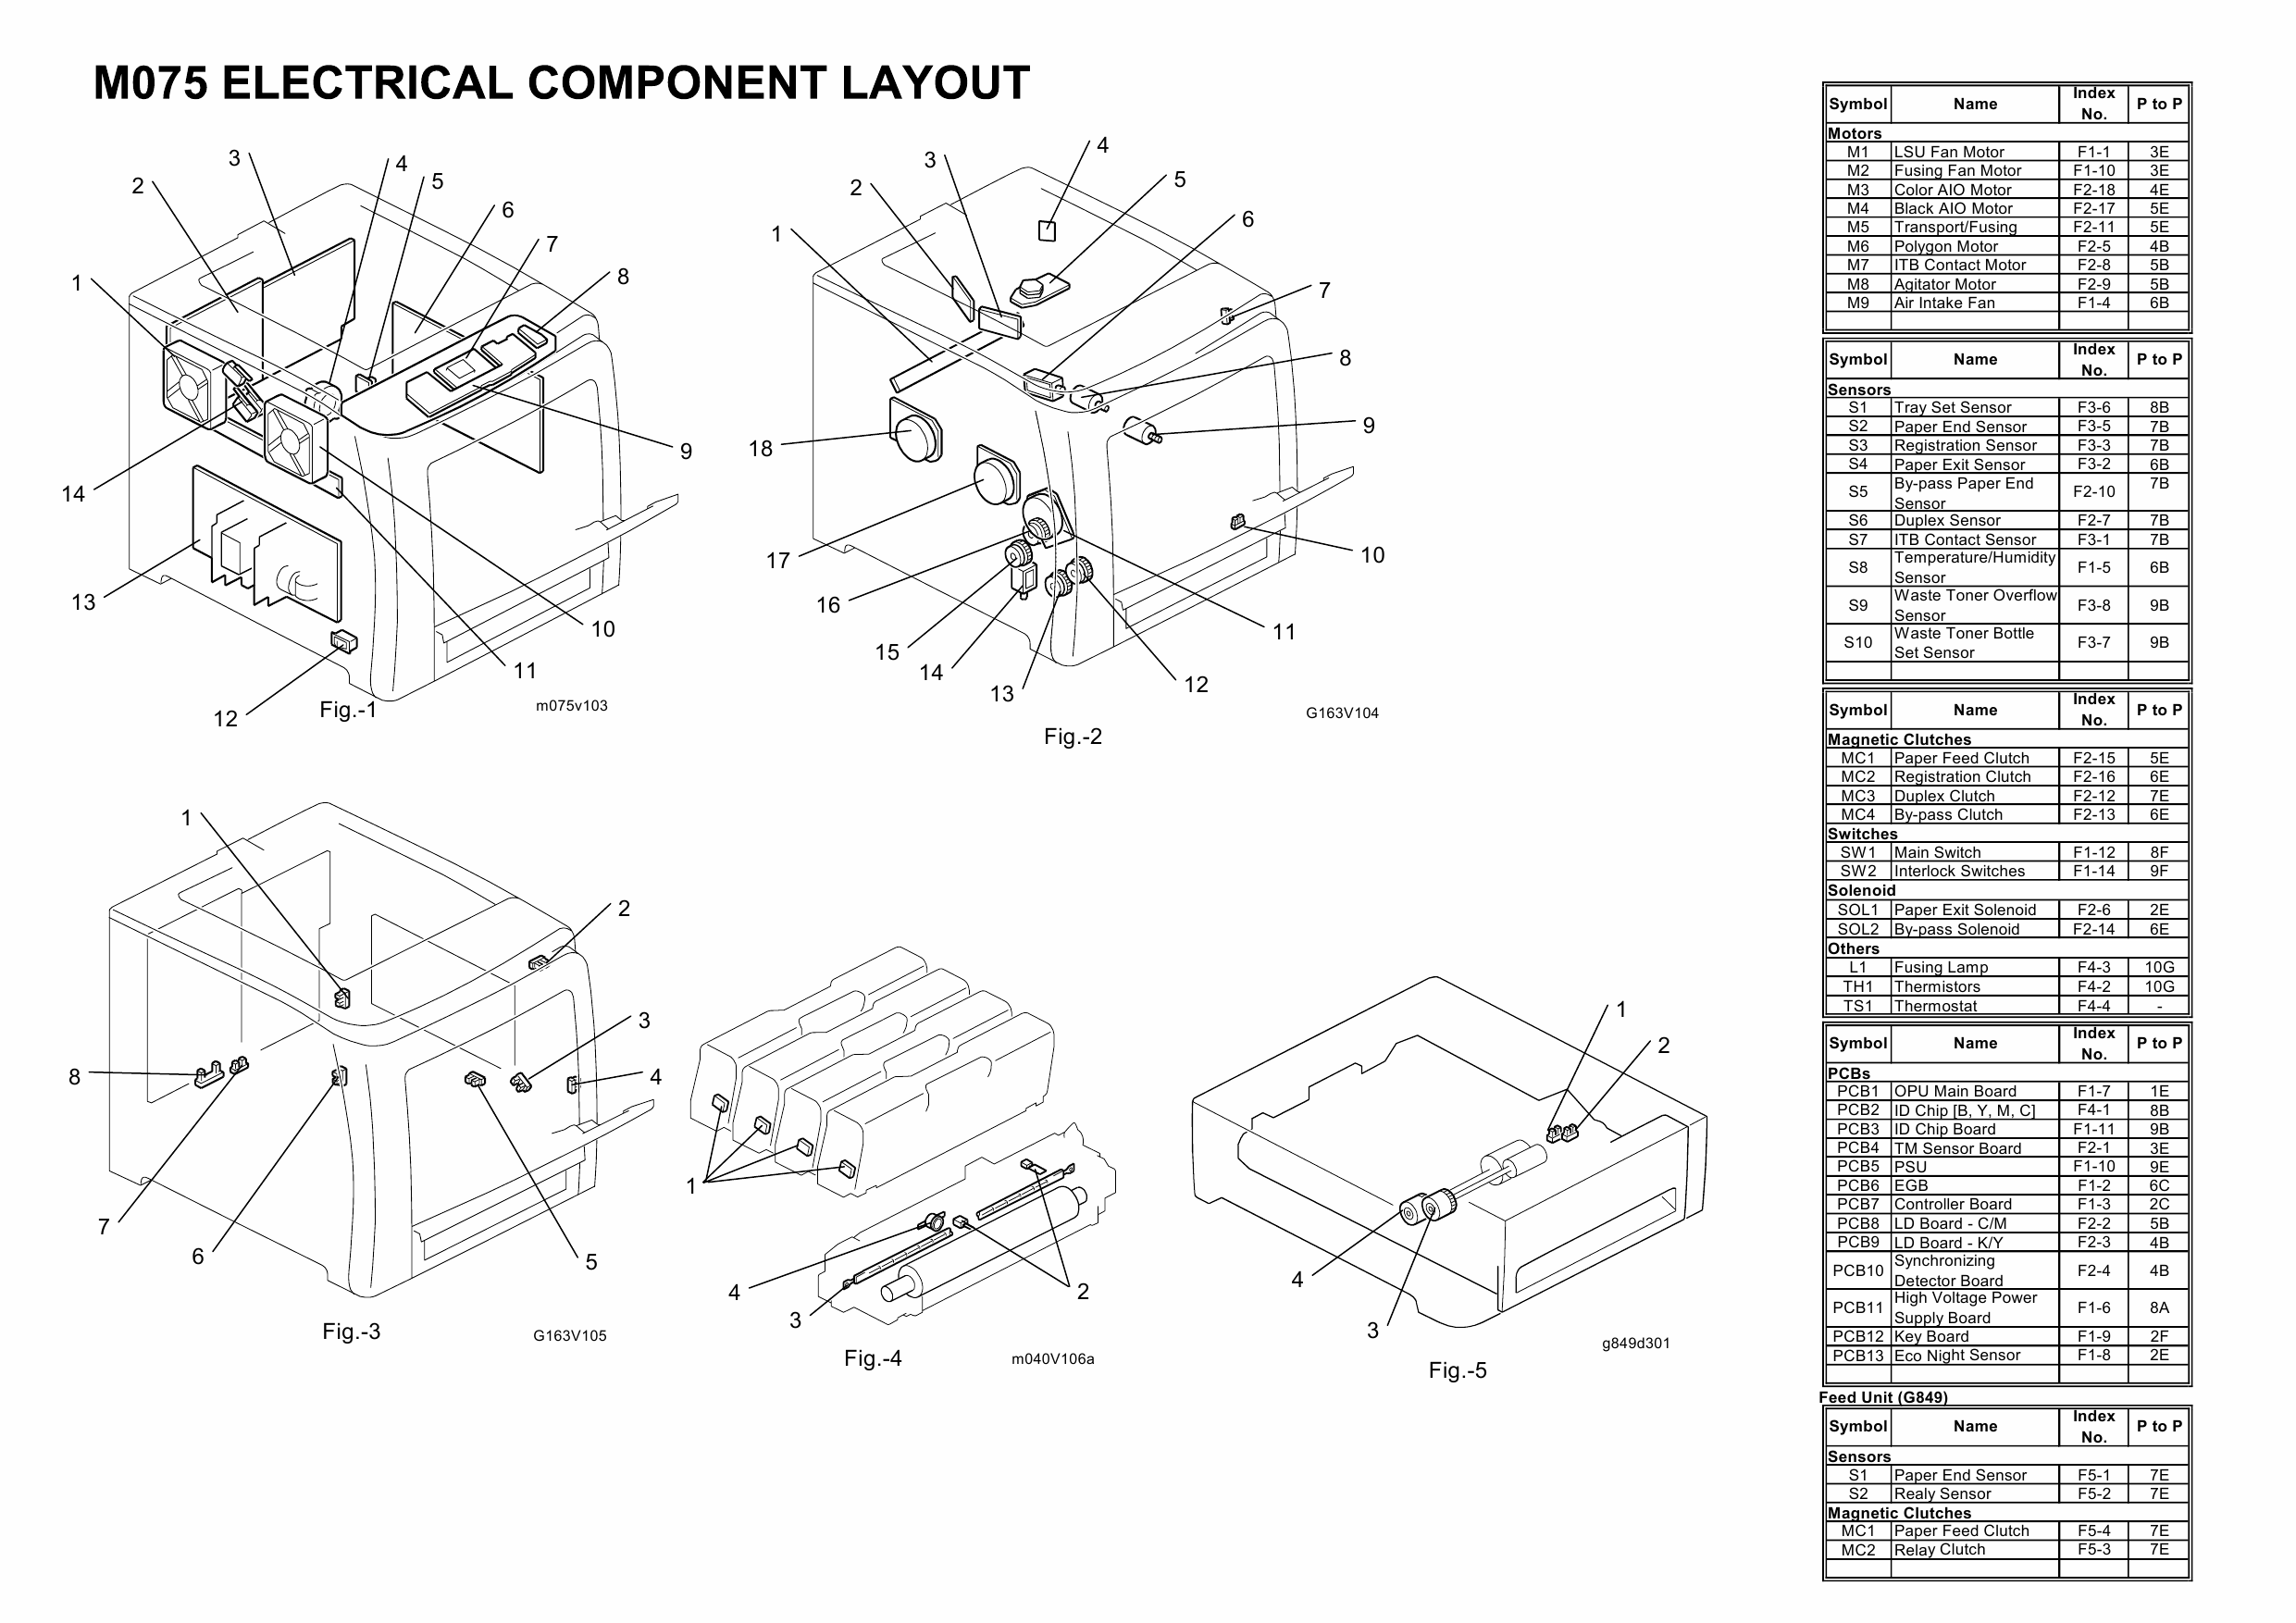 RICOH Aficio SP-C320DN M075 Circuit Diagram